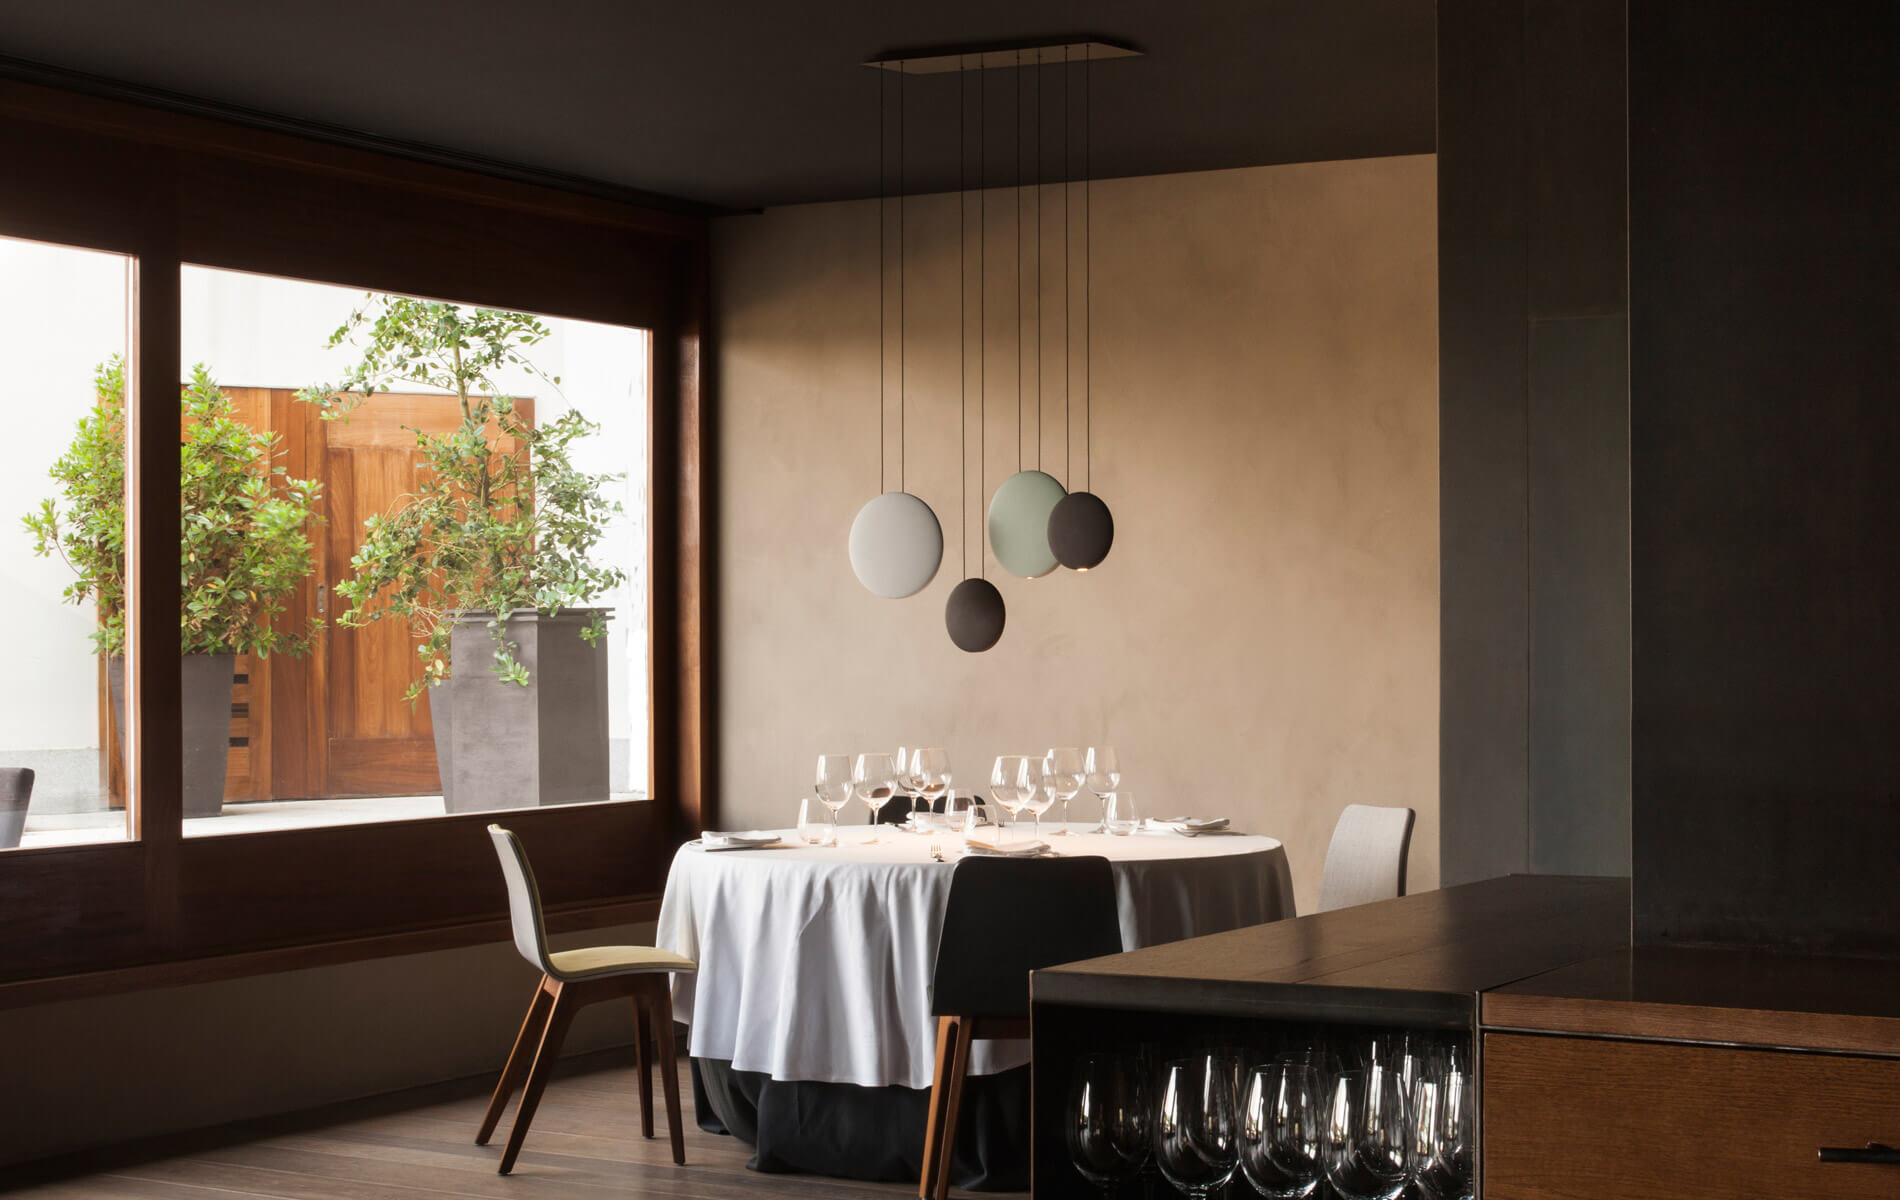 More information of Cosmos 2516 hanging lamp - Vibia